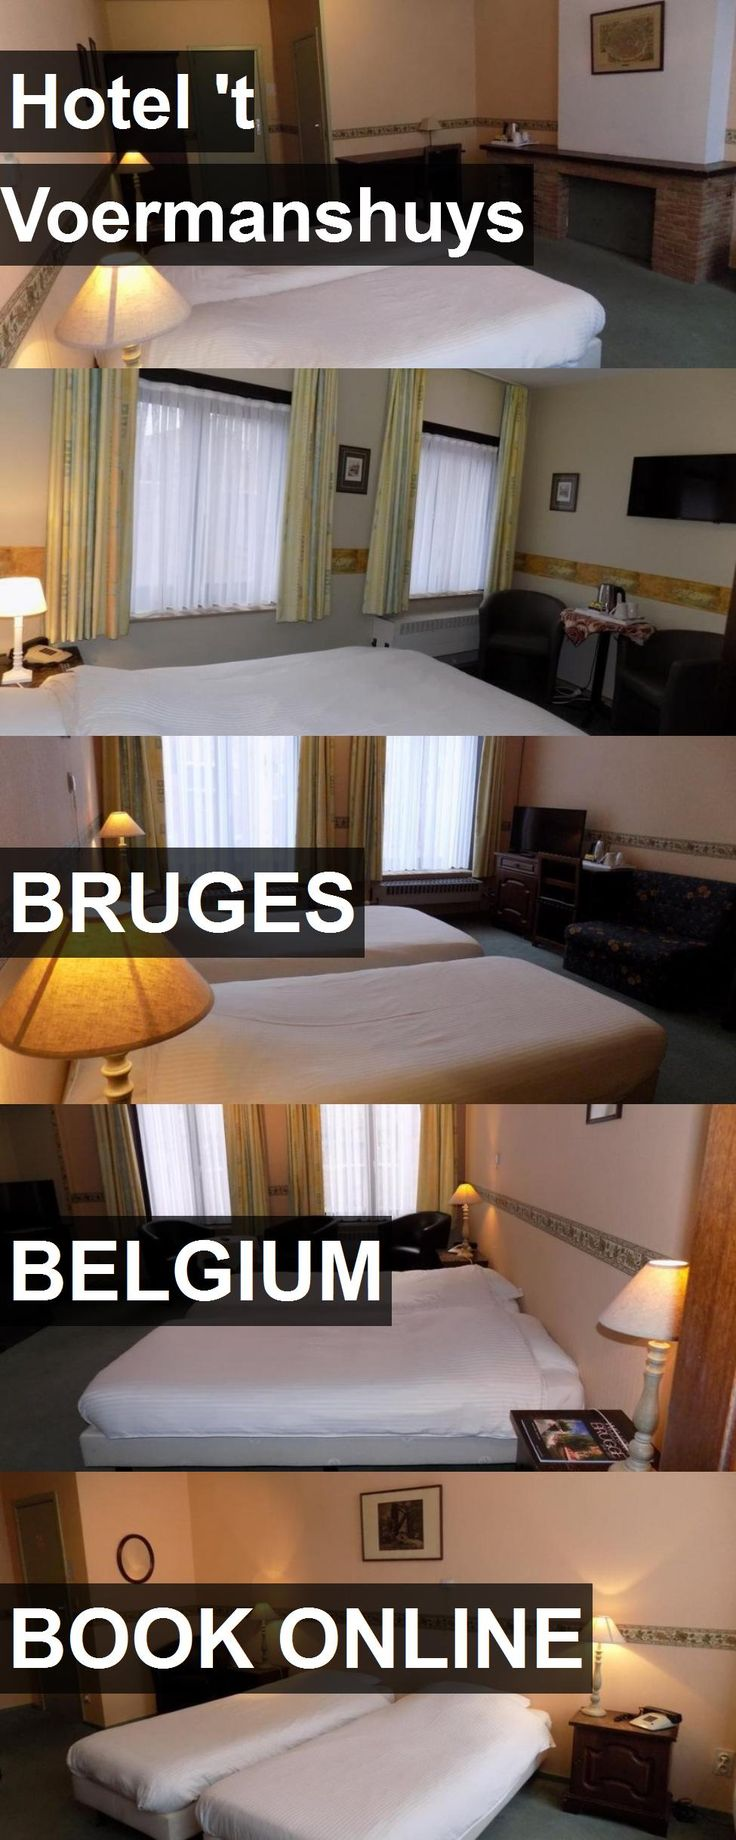 Hotel 't Voermanshuys in Bruges, Belgium. For more information, photos, reviews and best prices please follow the link. #Belgium #Bruges #travel #vacation #hotel